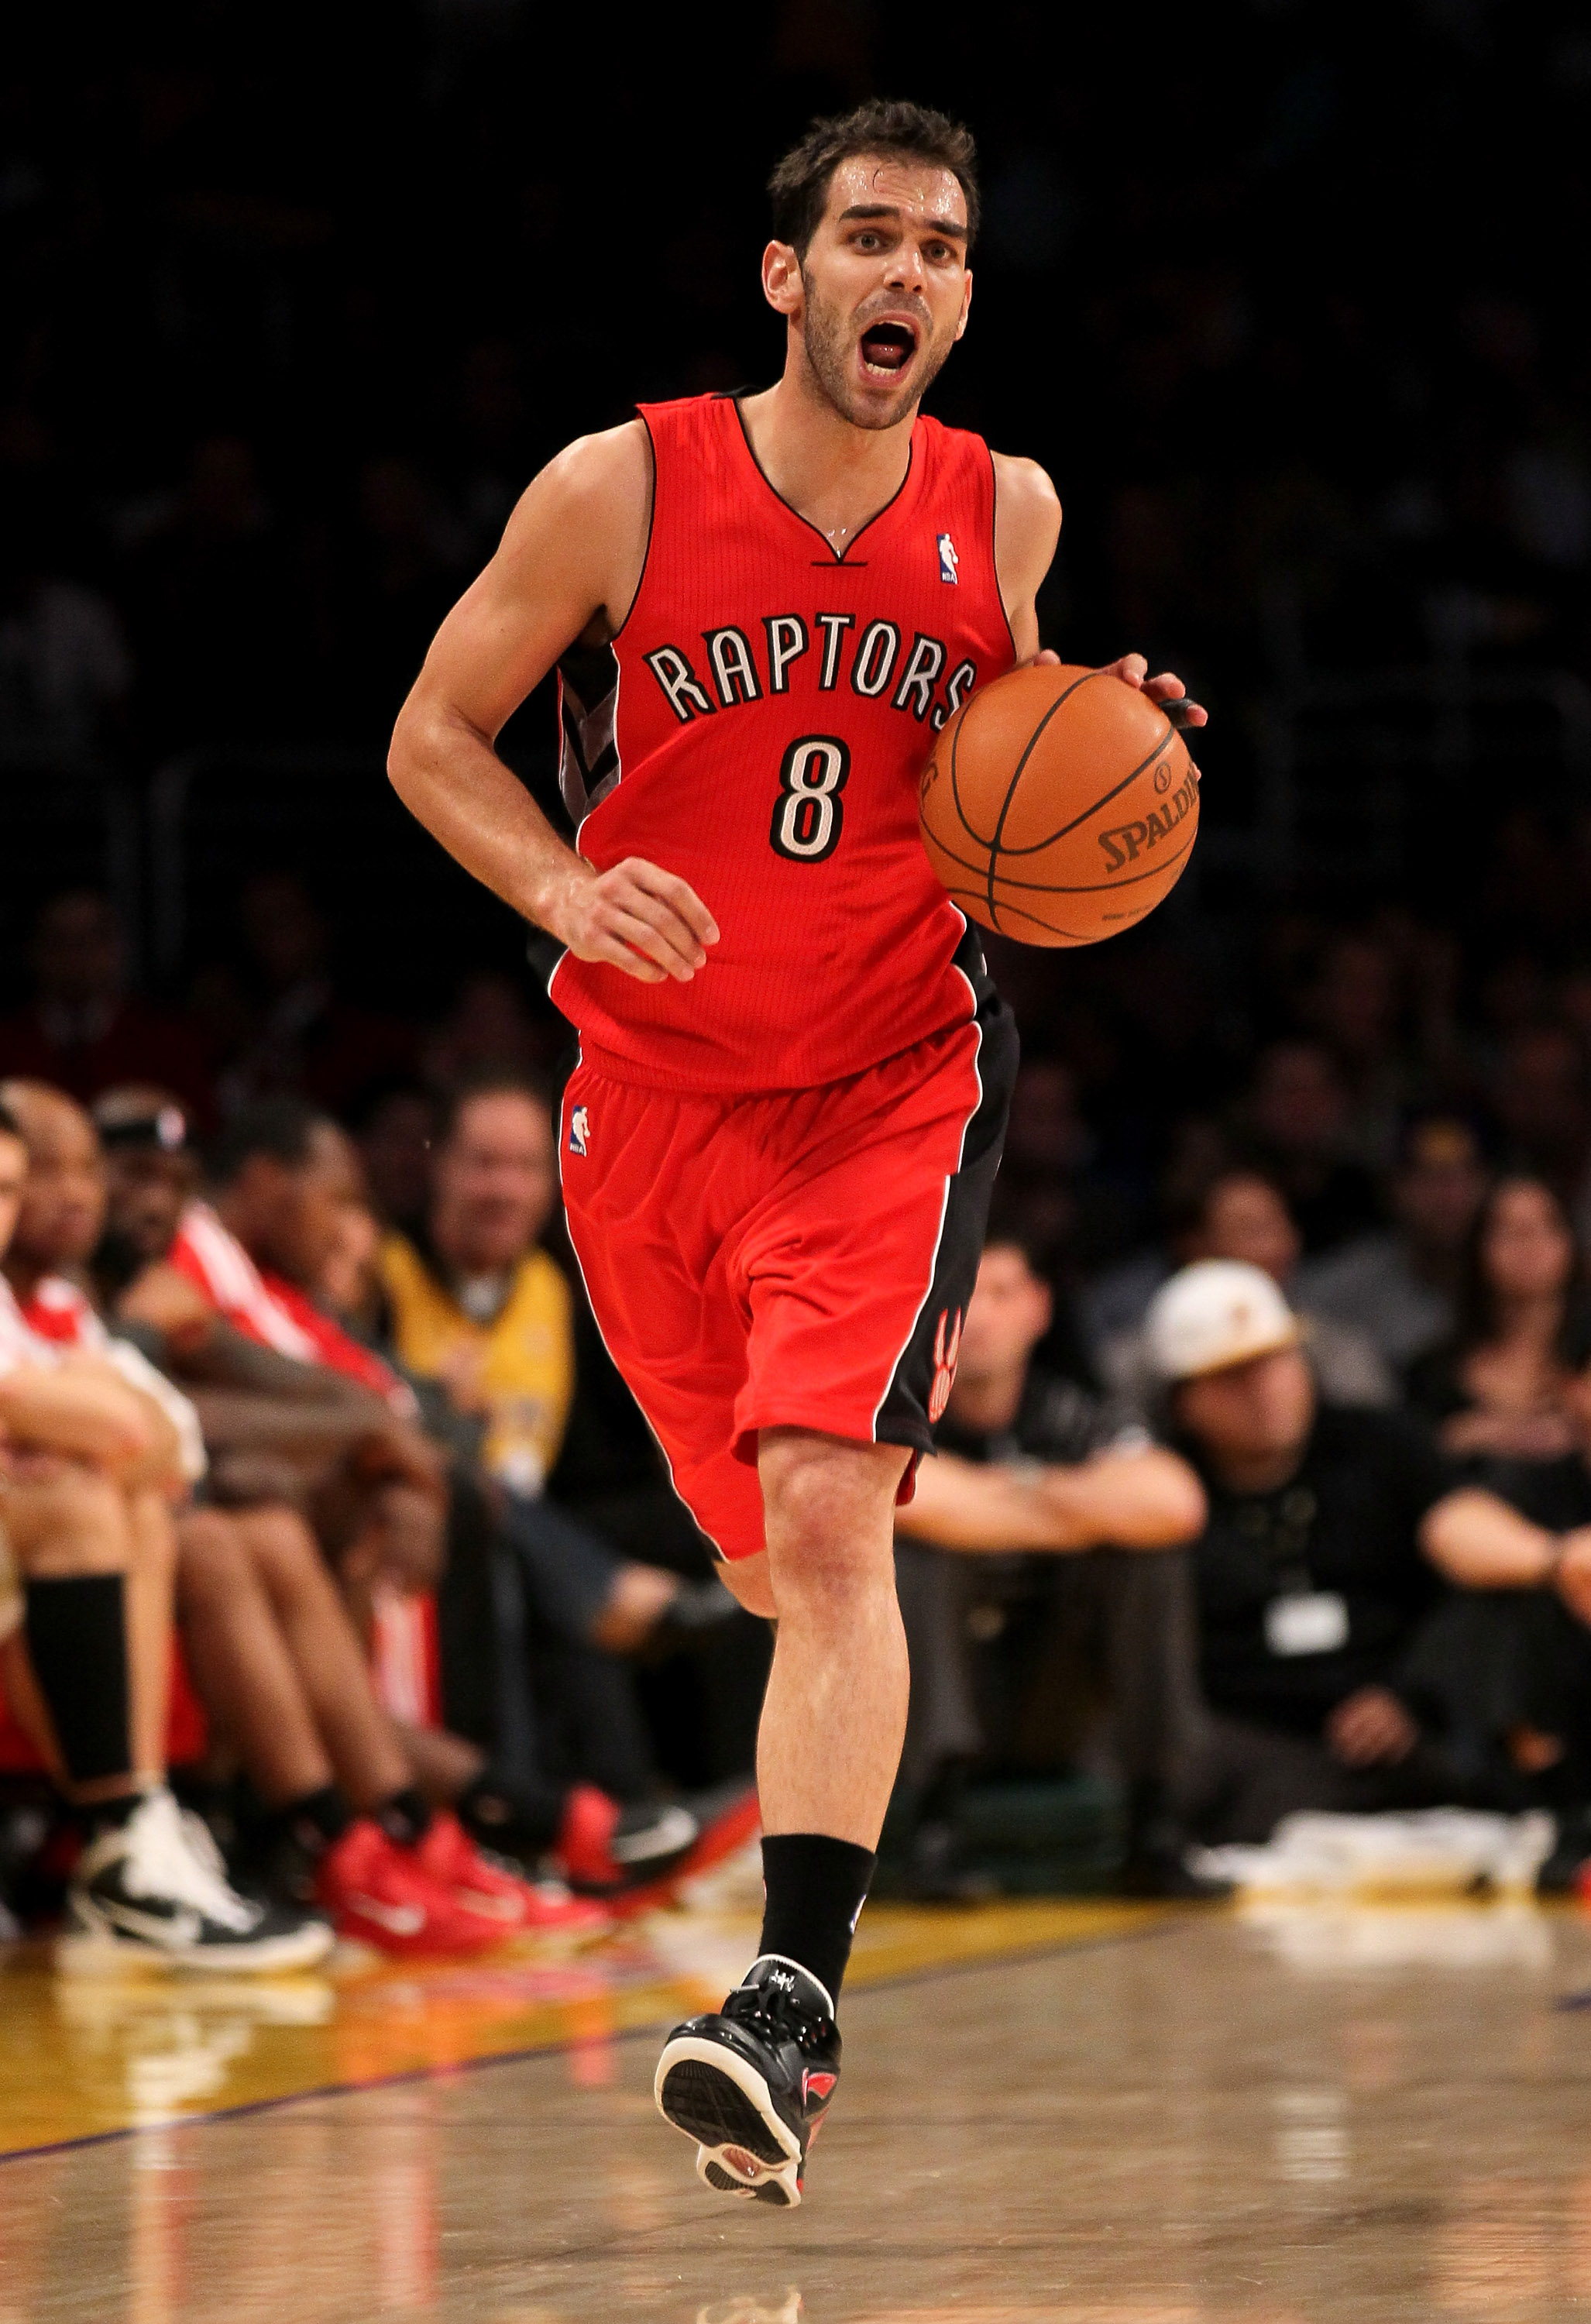 LOS ANGELES, CA - NOVEMBER 05:  Jose Calderon #8 of the Toronto Raptors shouts as he brings the ball up the court against the Los Angeles Lakers at Staples Center on November 5, 2010 in Los Angeles, California.  The Lakers won 108-102.   NOTE TO USER: Use